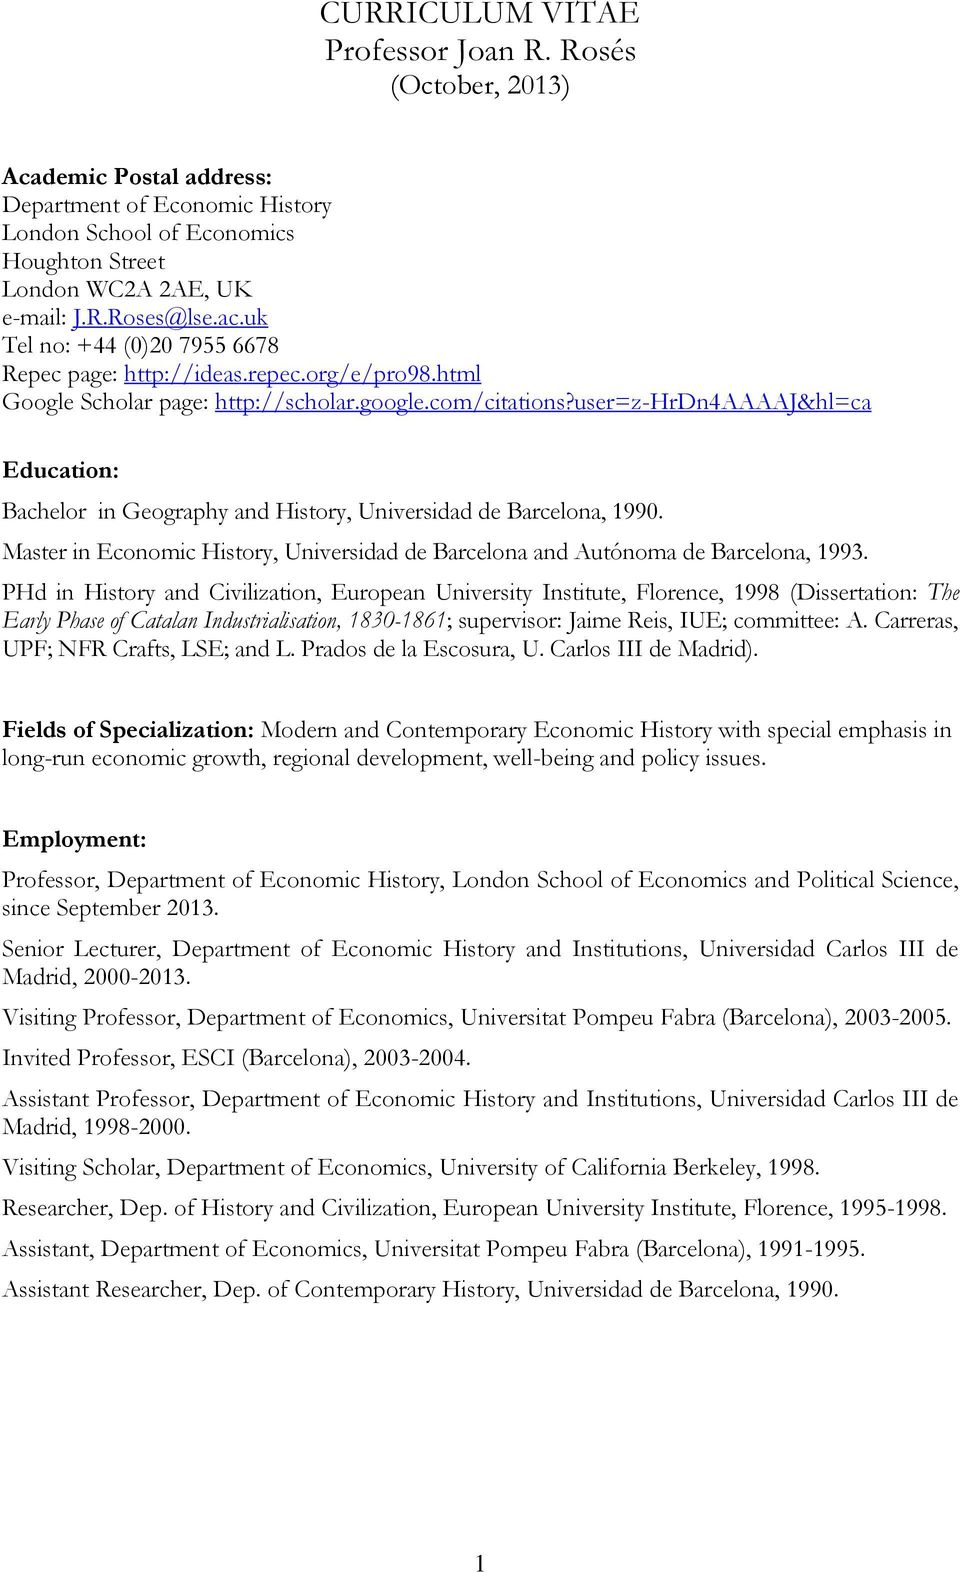 user=z-hrdn4aaaaj&hl=ca Education: Bachelor in Geography and History, Universidad de Barcelona, 1990. Master in Economic History, Universidad de Barcelona and Autónoma de Barcelona, 1993.